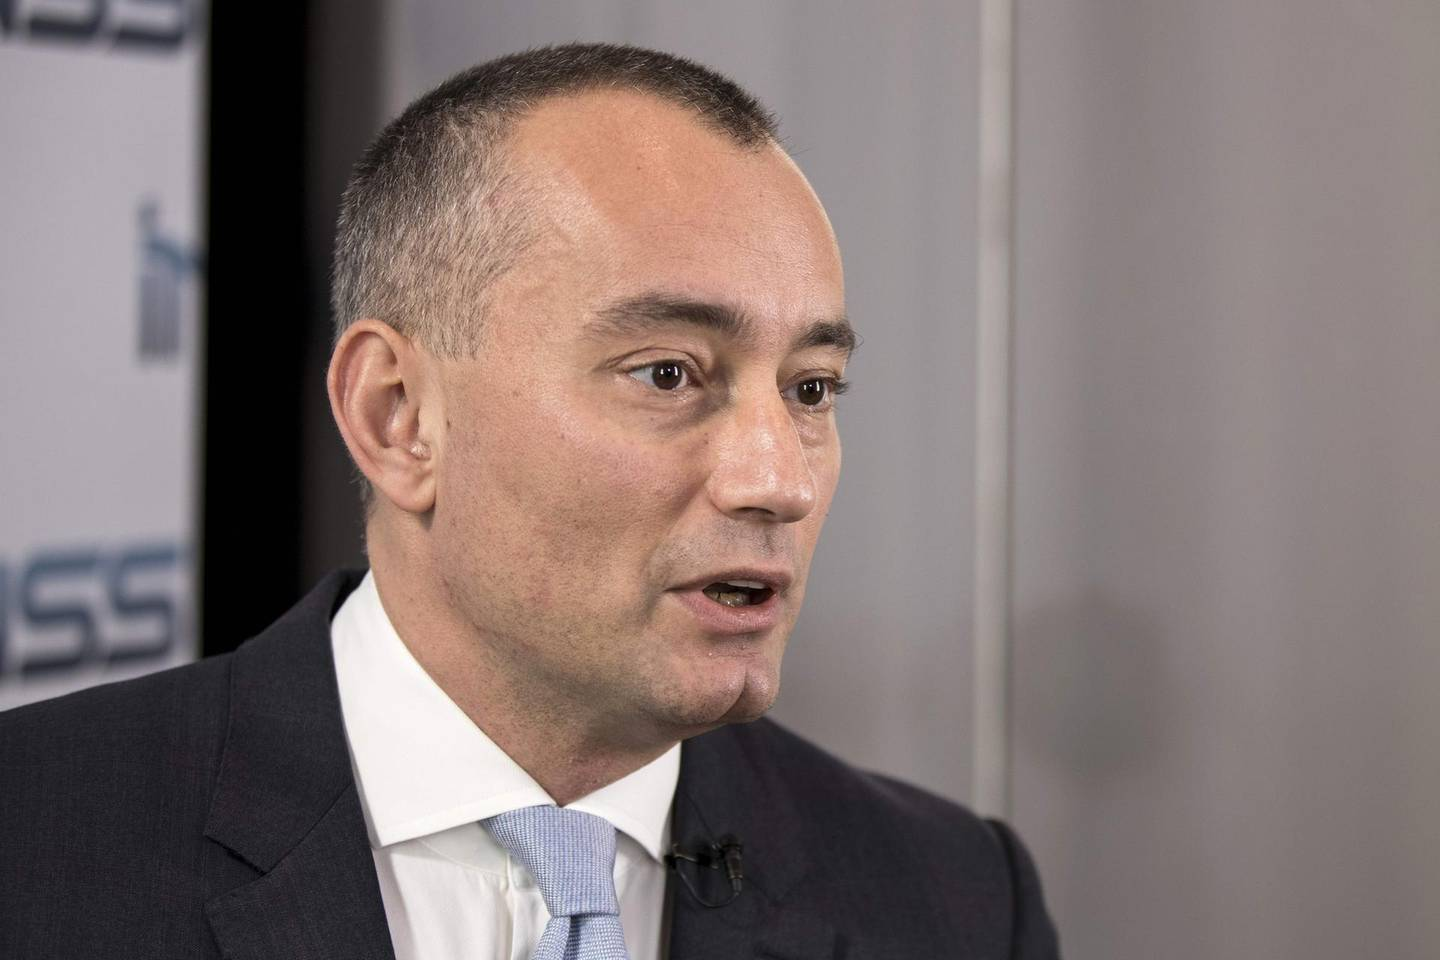 """(FILES) In this file photo Nickolay Mladenov, UN Special Coordinator for the Middle East Peace Process and Personal Representative of the Secretary-General to the Palestine Liberation Organization and the Palestinian Authority, speaks during an interview following the INSS conference, on January 30, 2018 in the Israeli city of Tel Aviv. The UN's special Mideast envoy called May 20, 2020 on Israel to drop plans to annex parts of the occupied West Bank, joining a growing international chorus of opposition. Envoy Nickolay Mladenov also called on the Palestinians to resume talks with the so-called Quartet, comprising the US, Russia, the EU and the United Nations. """"Israel must abandon threats of annexation,"""" Mladenov said during a meeting of the Security Council.   / AFP / JACK GUEZ"""